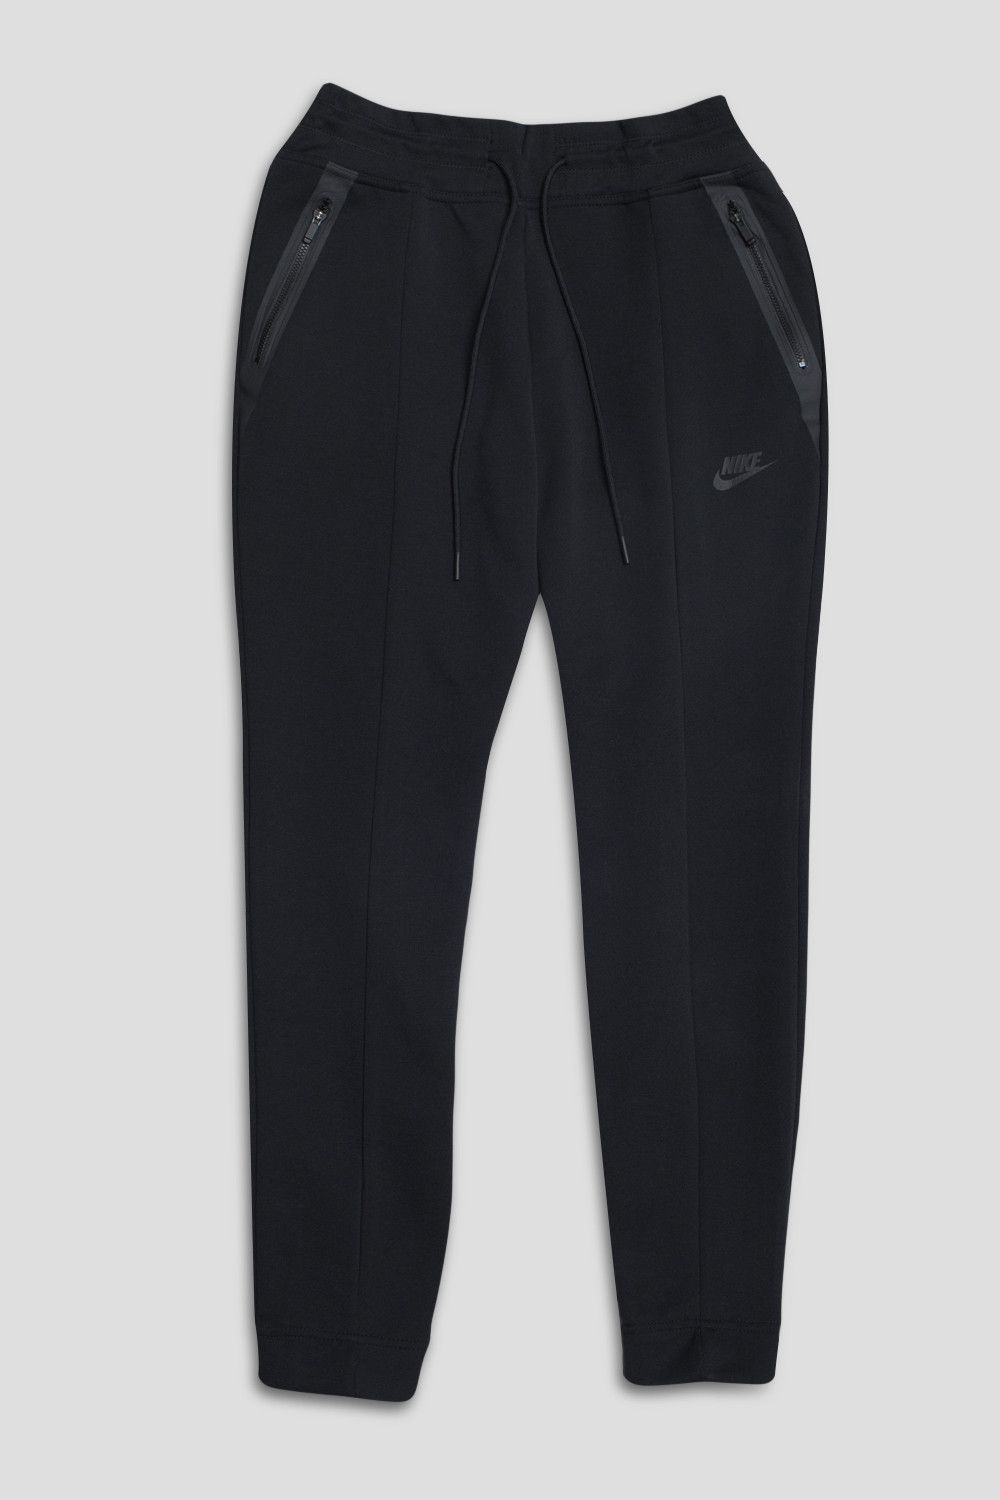 34c1f15582 Nike womens sportswear tech fleece pant black in 2018